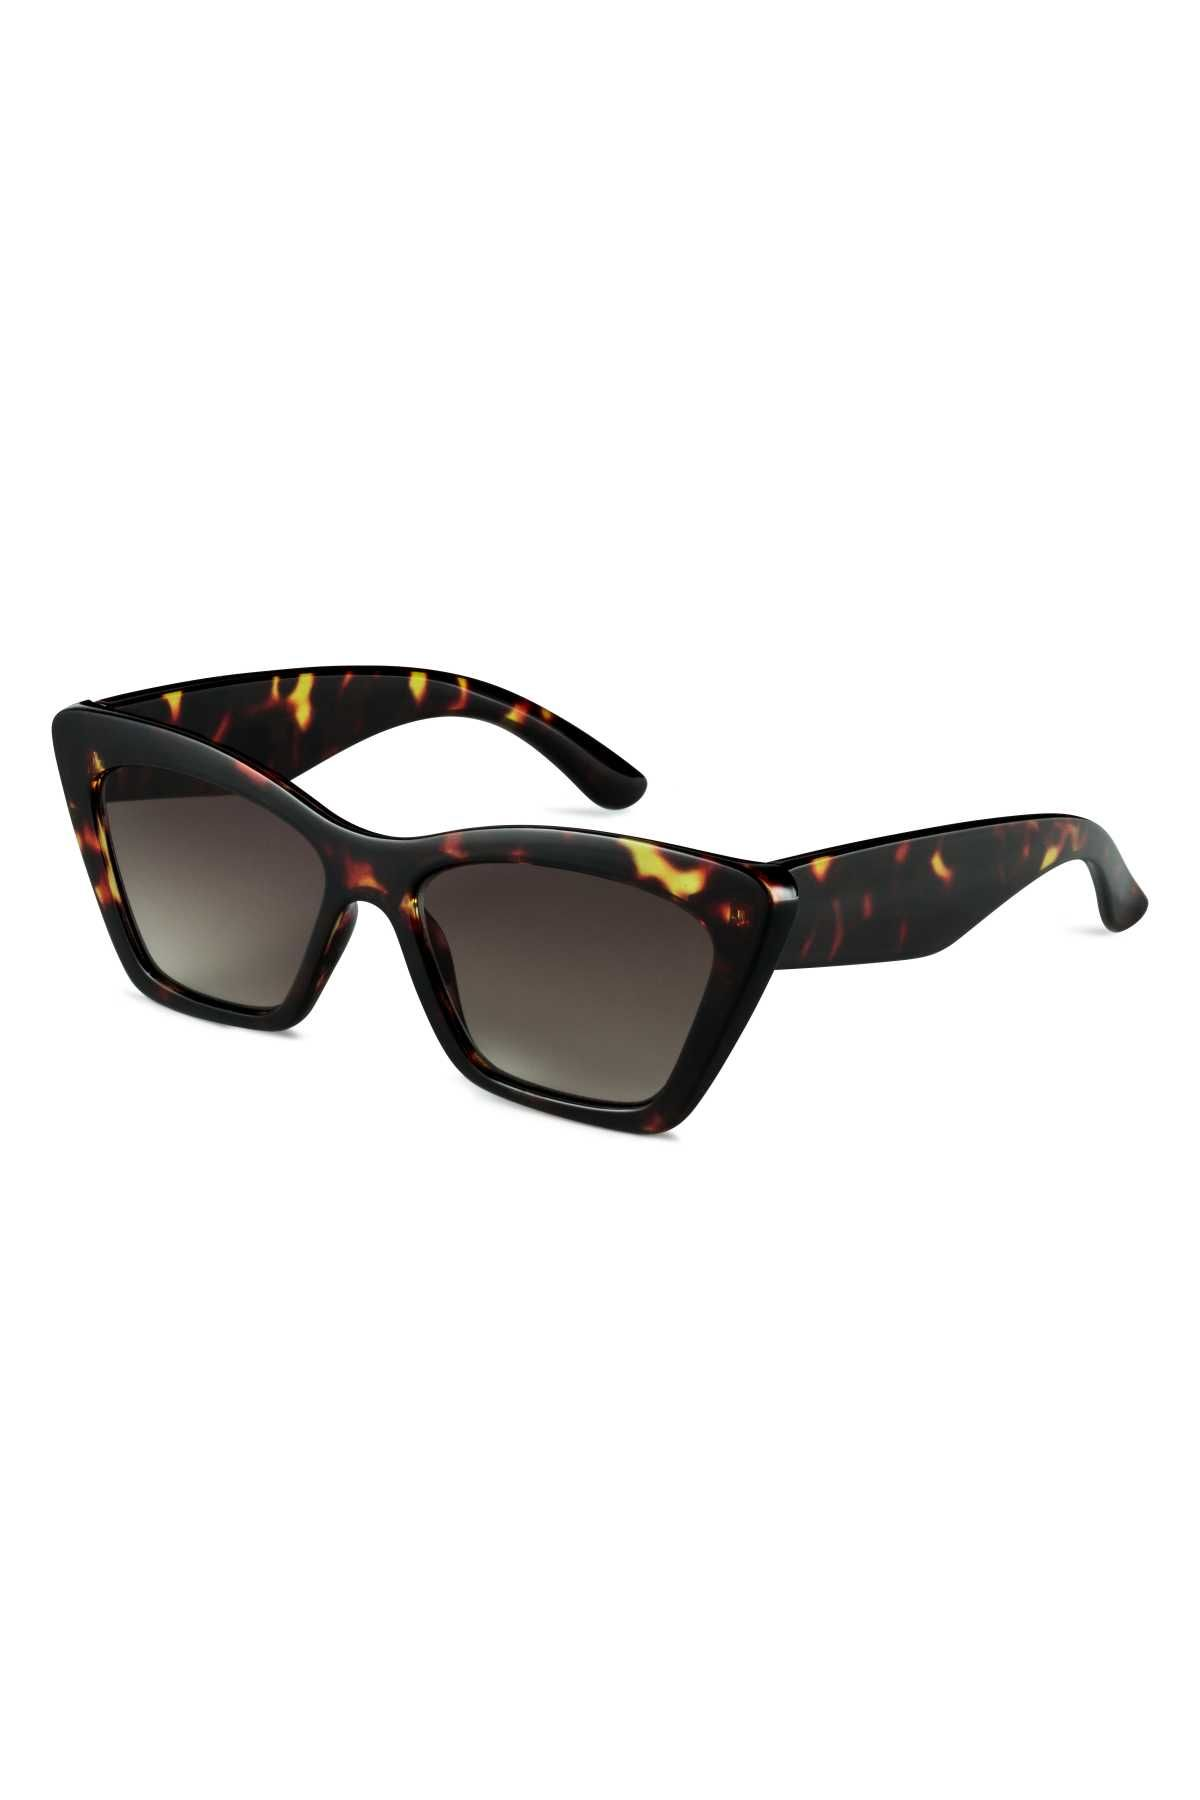 2d8faef5a3fbf Dark brown tortoiseshell. Sunglasses with plastic frames and UV-protective